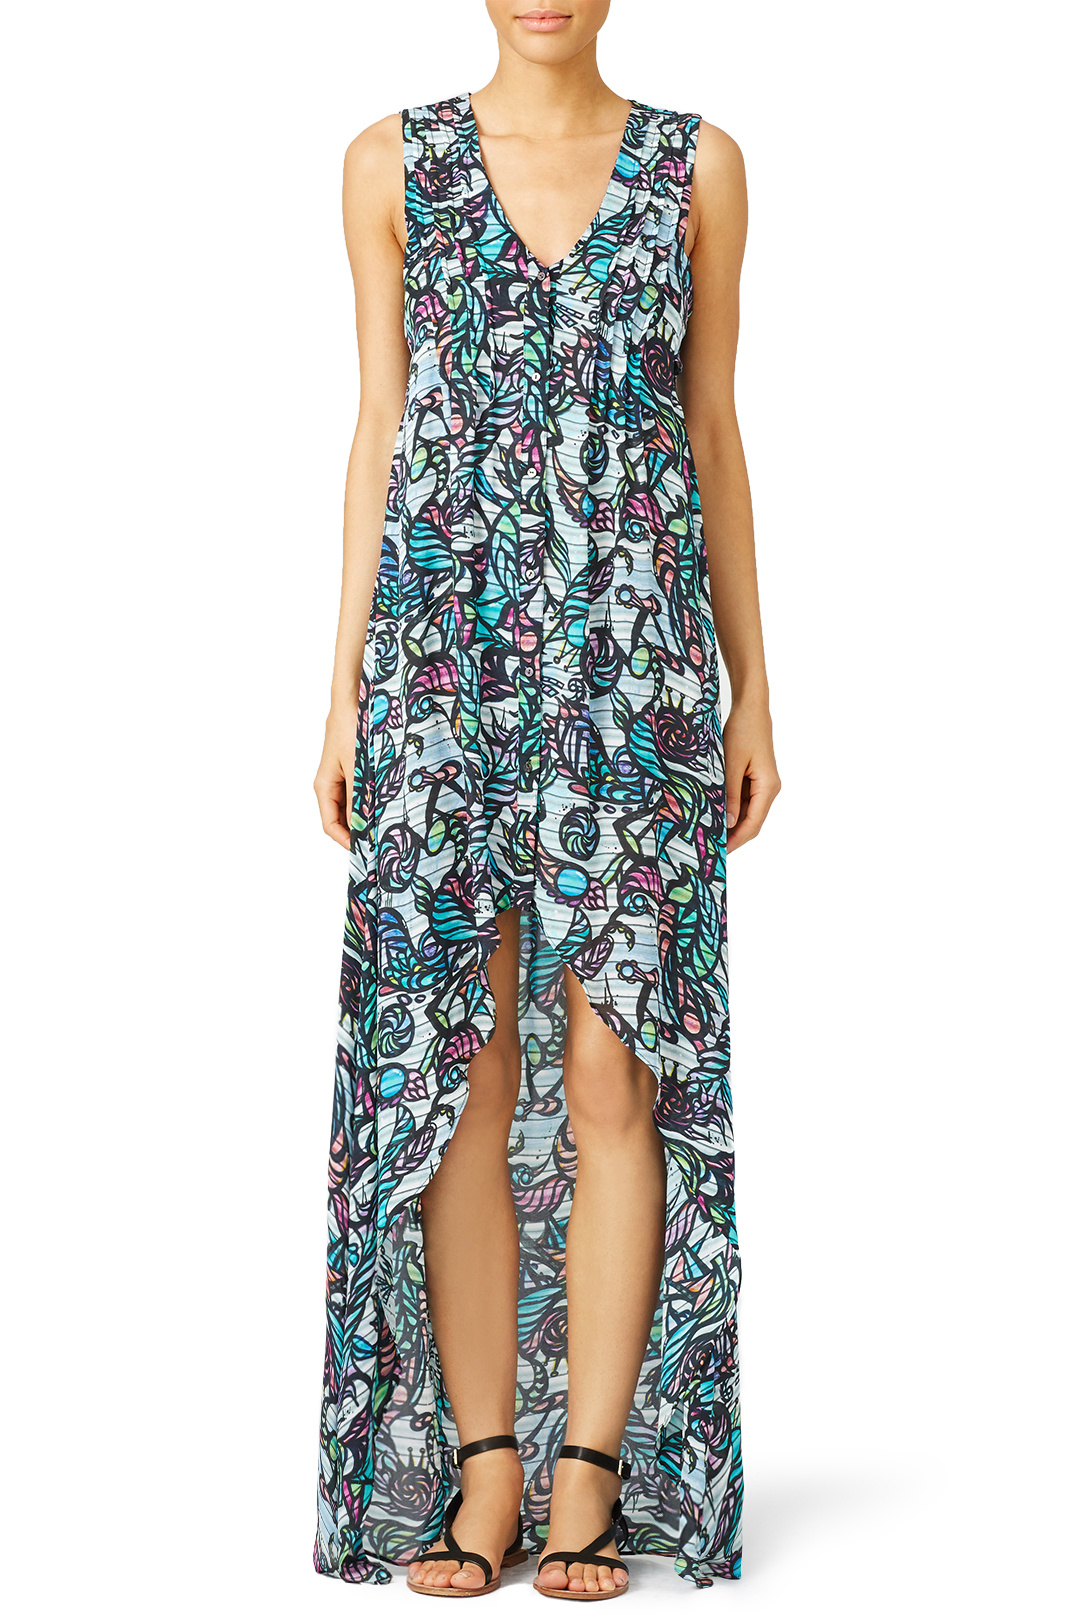 Wavy Mural Maxi from Rent the Runway